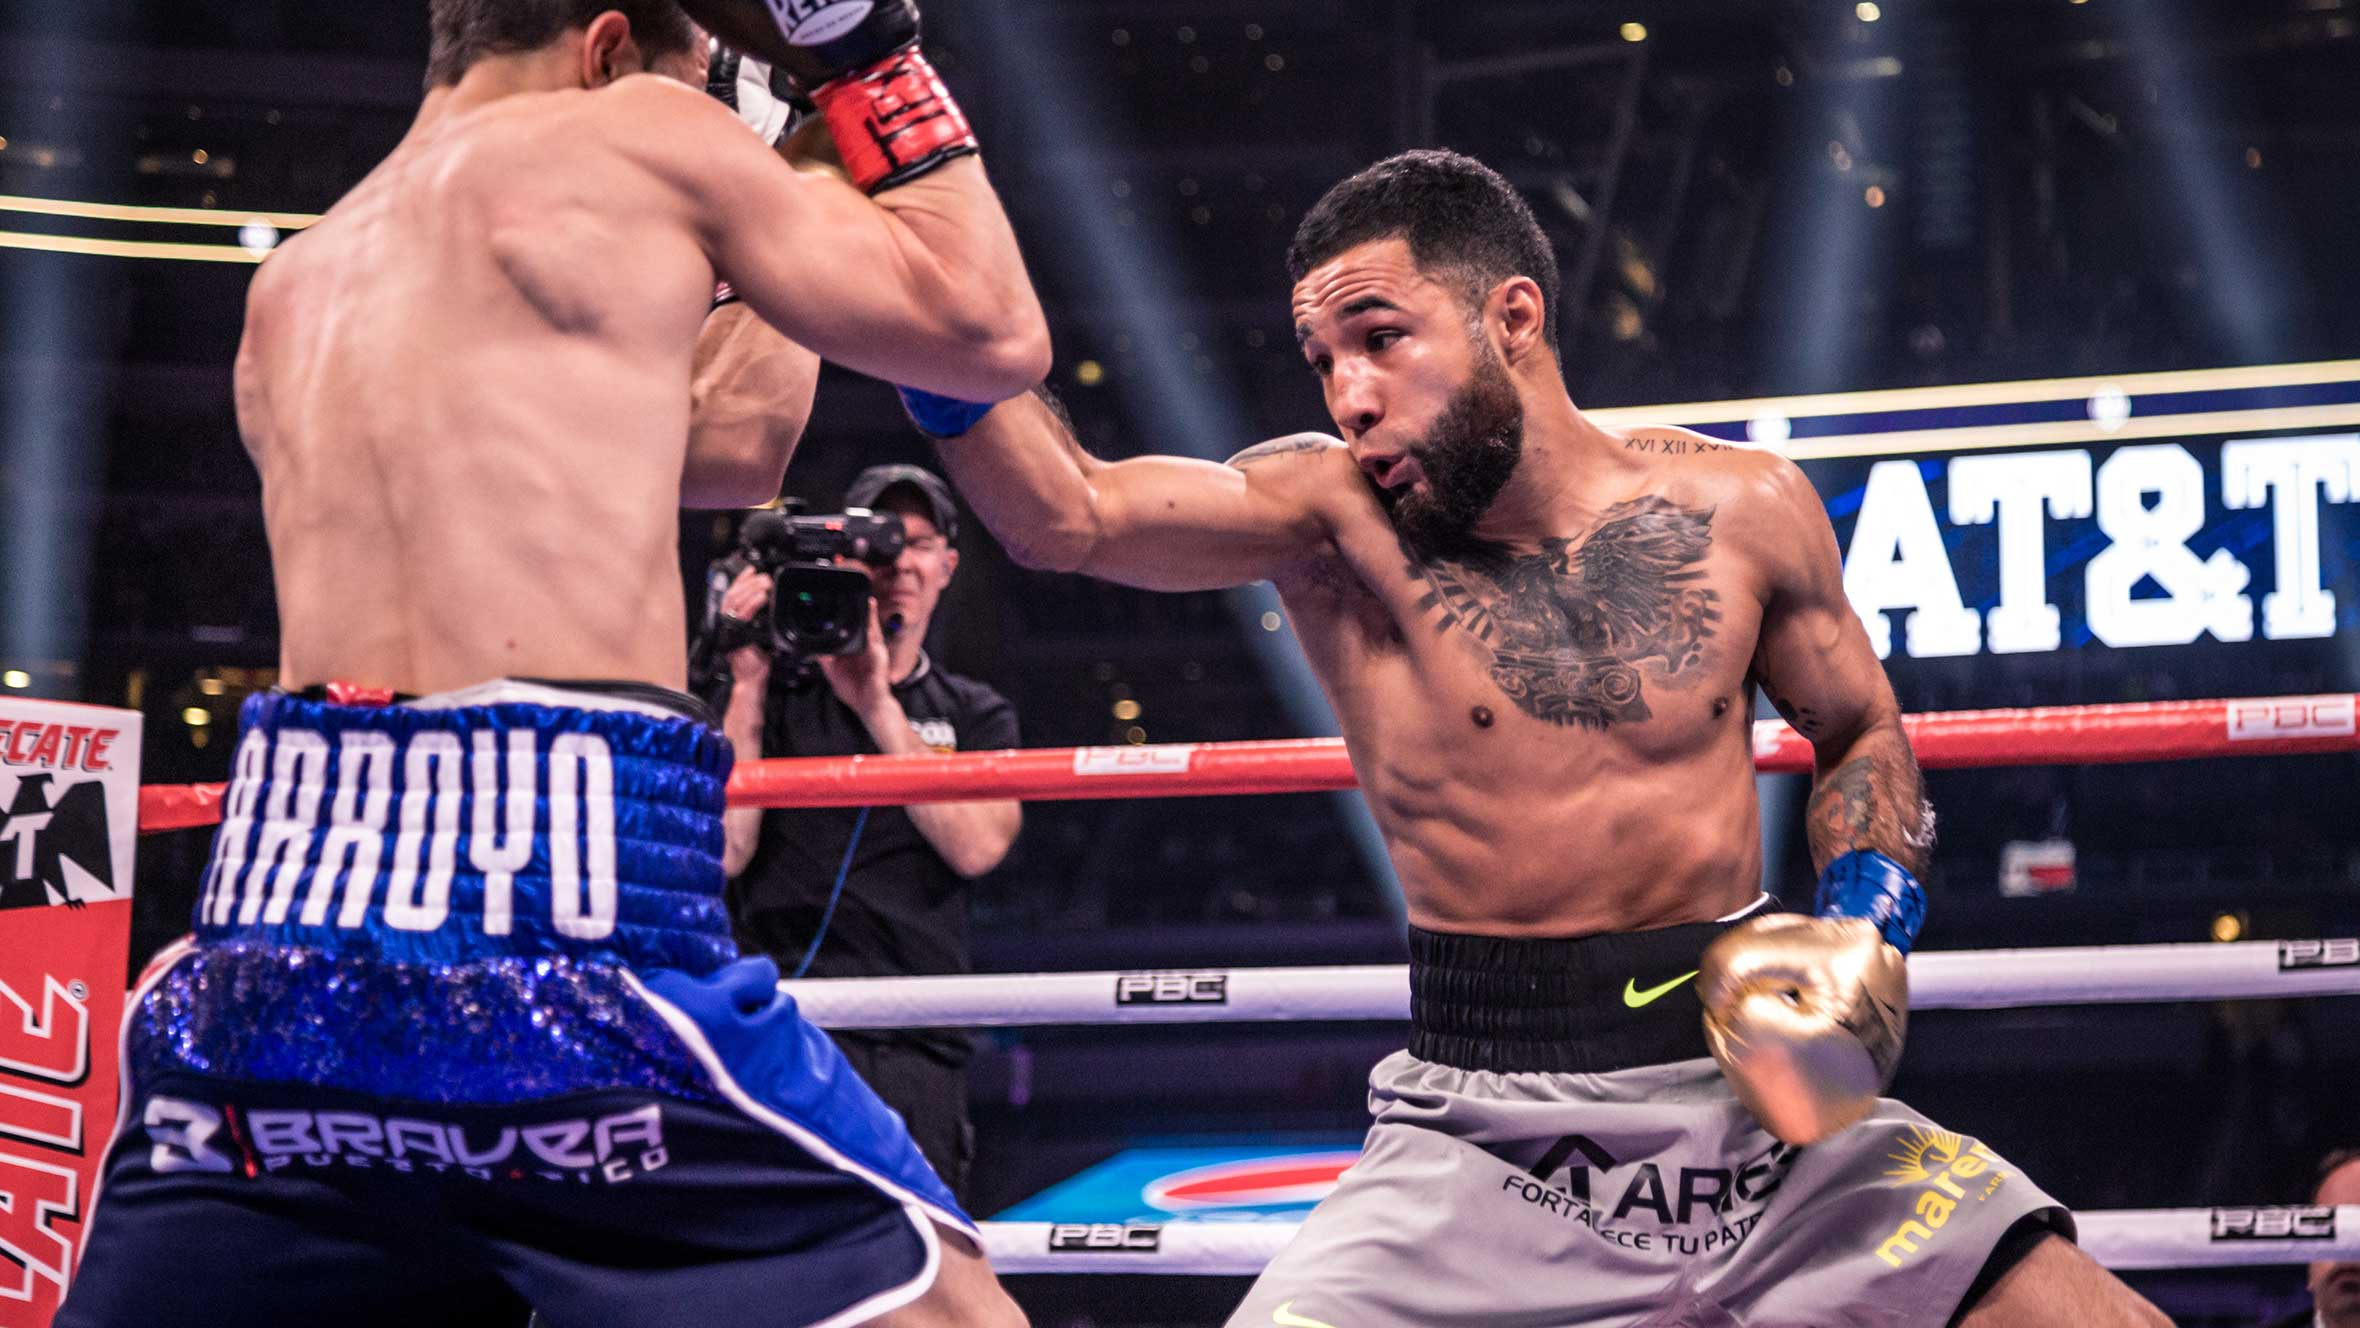 Luis Nery - Next Fight, Fighter Bio, Stats & News